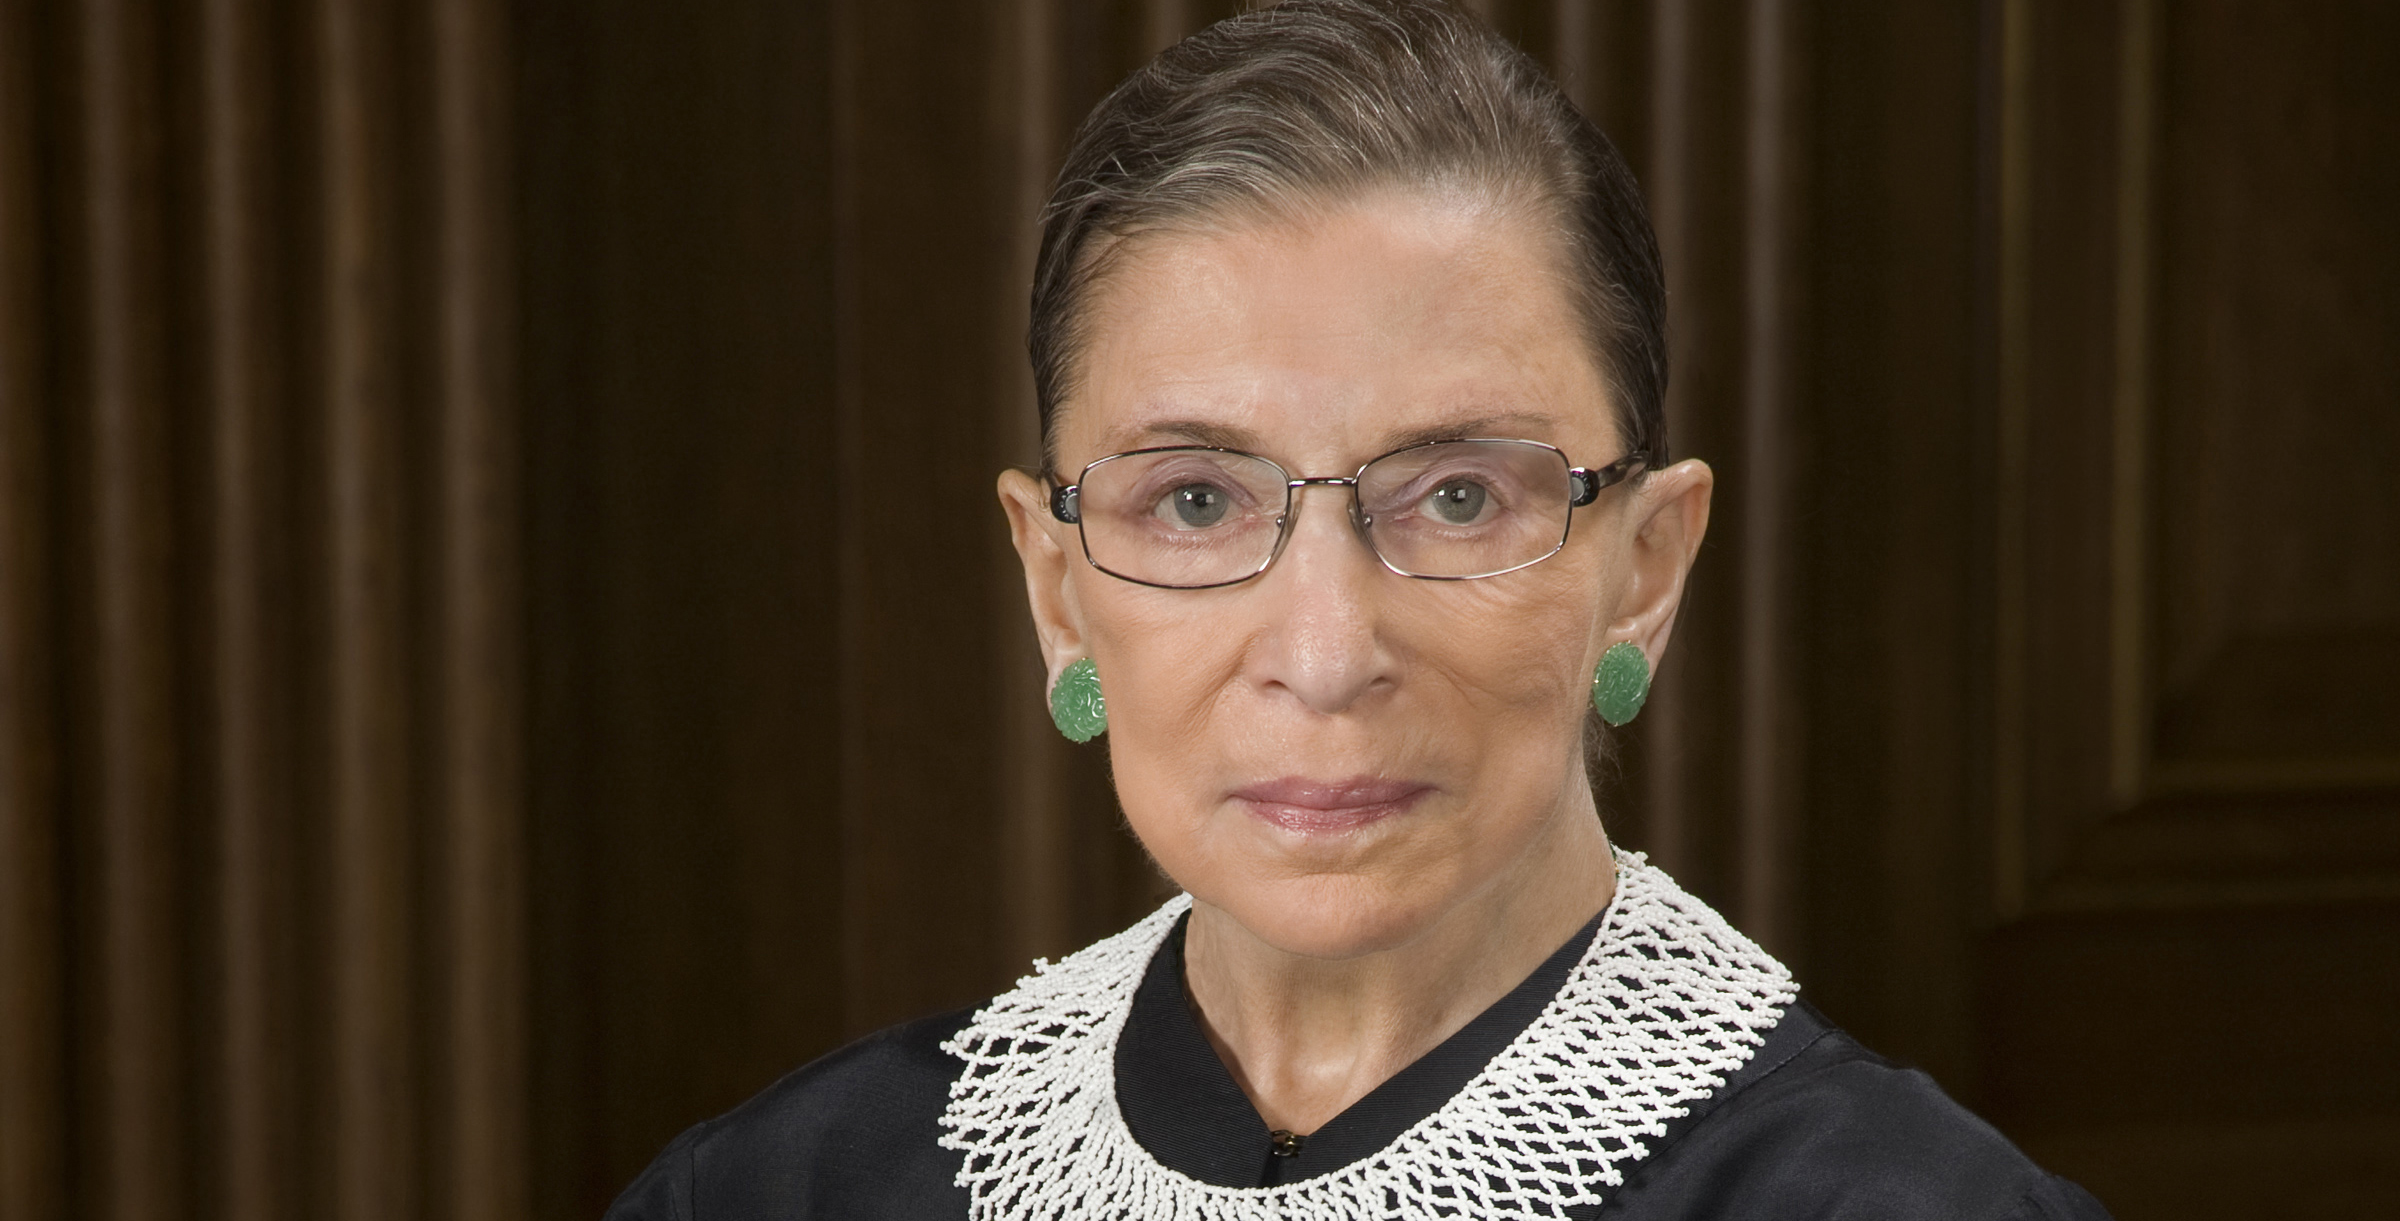 Justice Ginsburg is probably quite ill